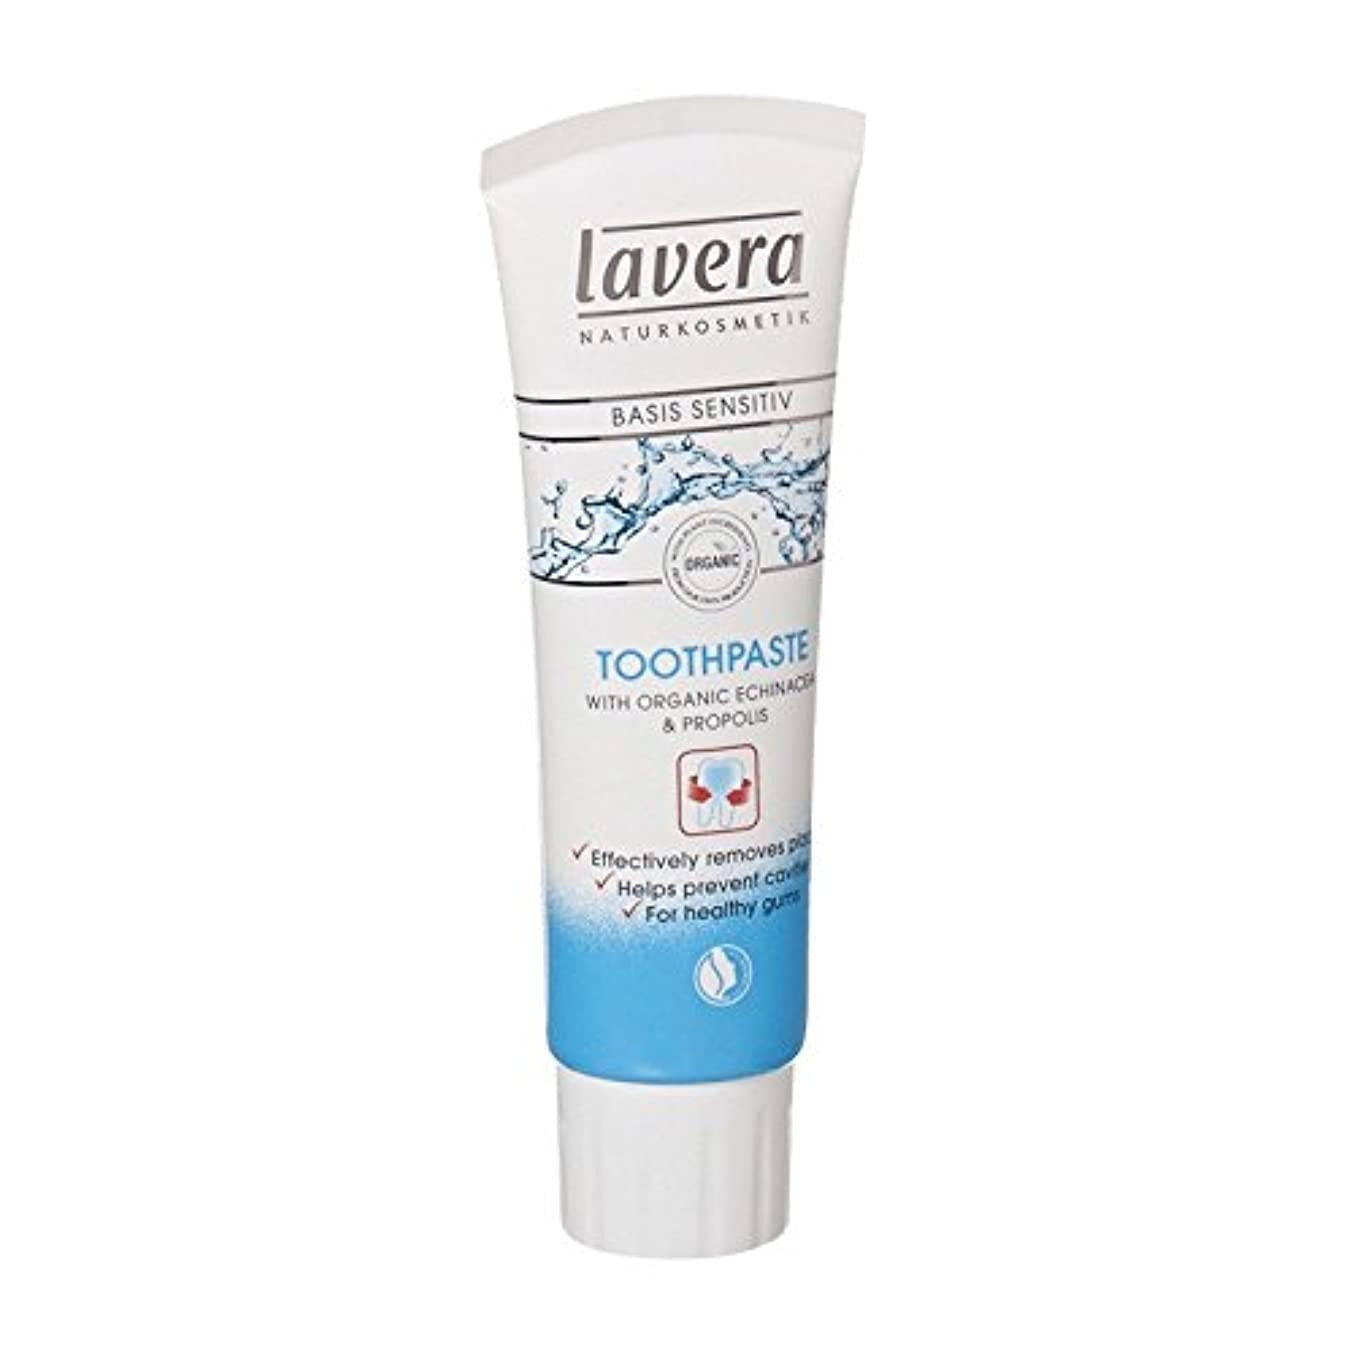 拷問褐色制限Lavera Basis Sensitiv Toothpaste Echinacea & Propolis (Pack of 2) - Laveraの基礎Sensitiv歯磨き粉エキナセア&プロポリス (x2) [並行輸入品]